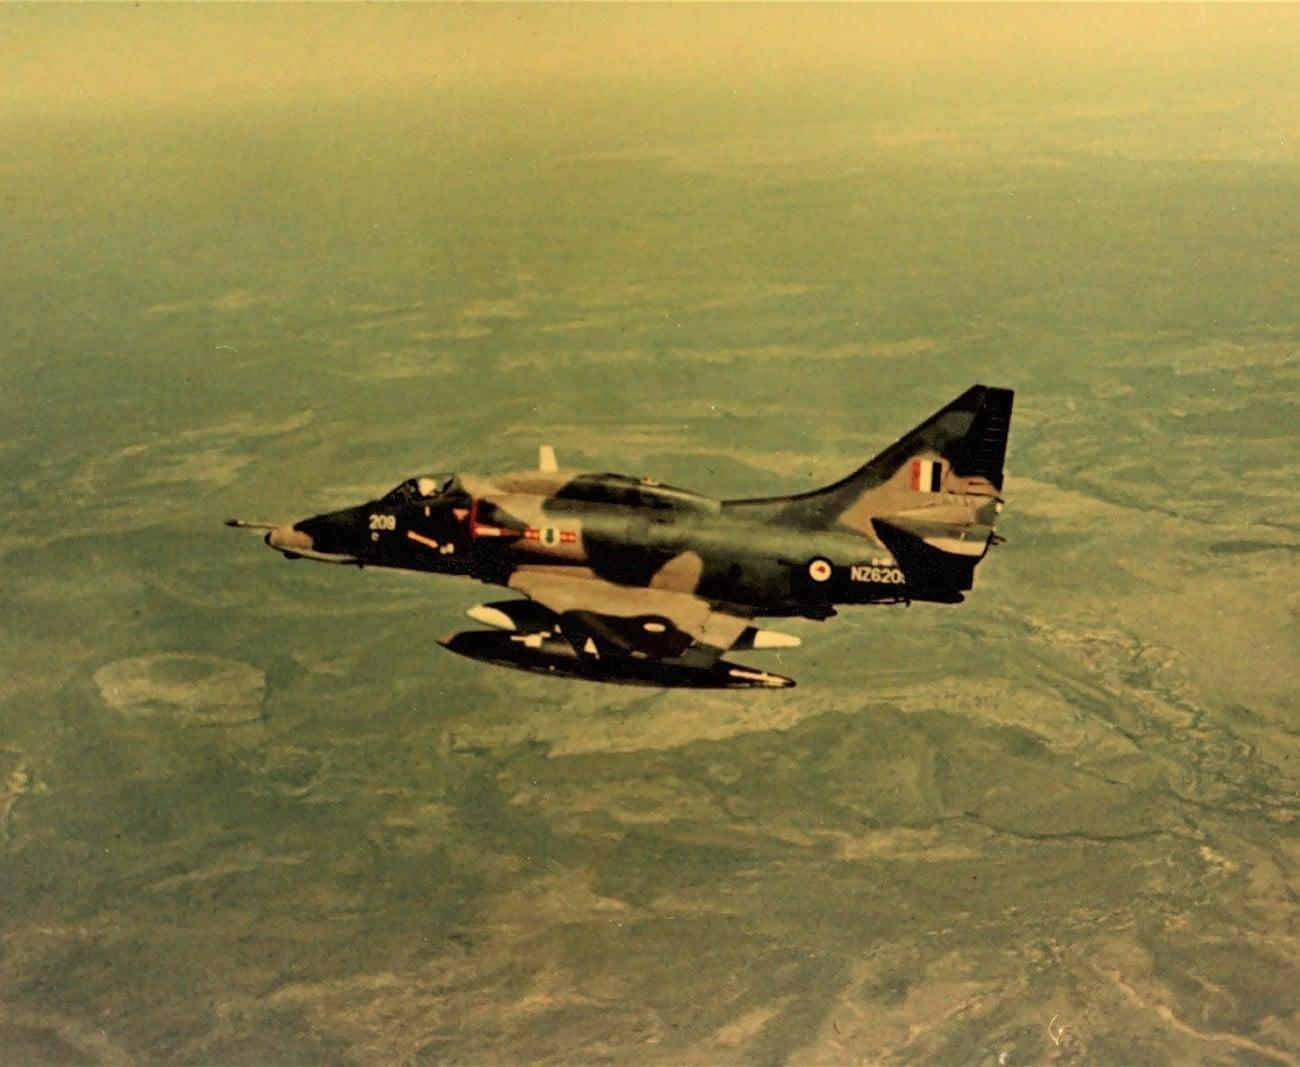 Transit from Darwin to Amberley at about 27,000 feet over the arid Barkly Tablelands – 75 Sqn A4K Skyhawk NZ6209 – Sunday 10th June 1973 – photo by Jim Barclay